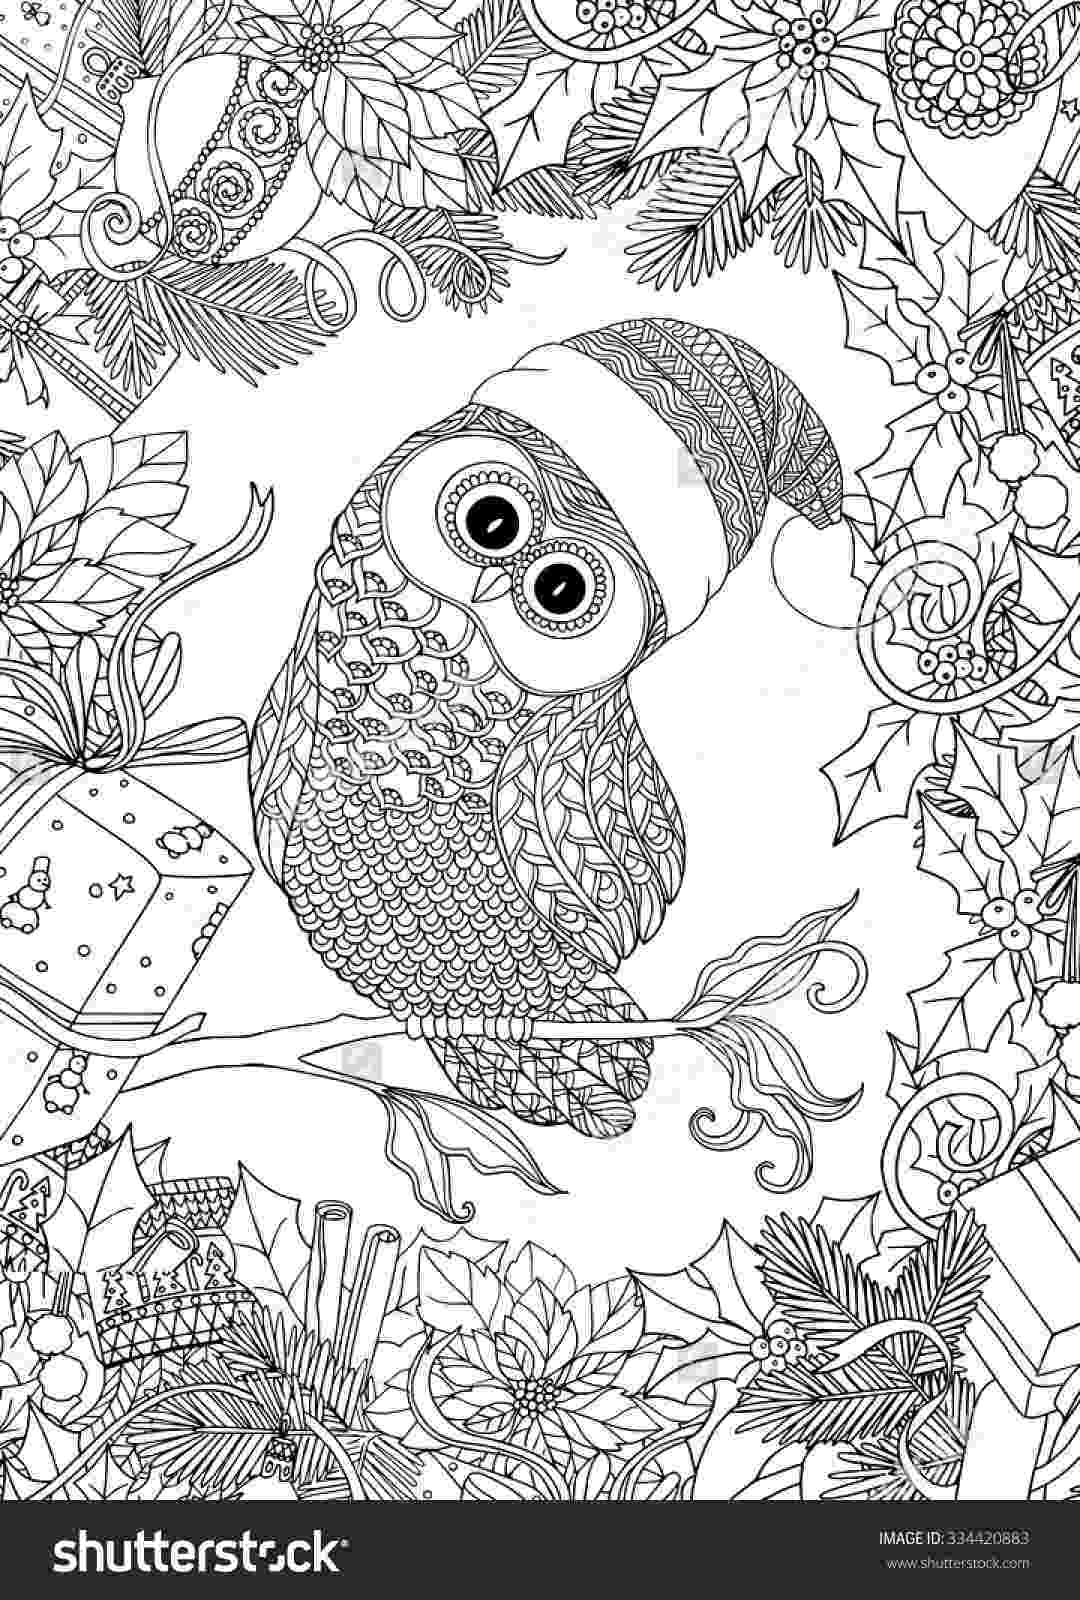 christmas colouring pages for older kids christmas coloring pages for adults christmas pages older colouring kids for